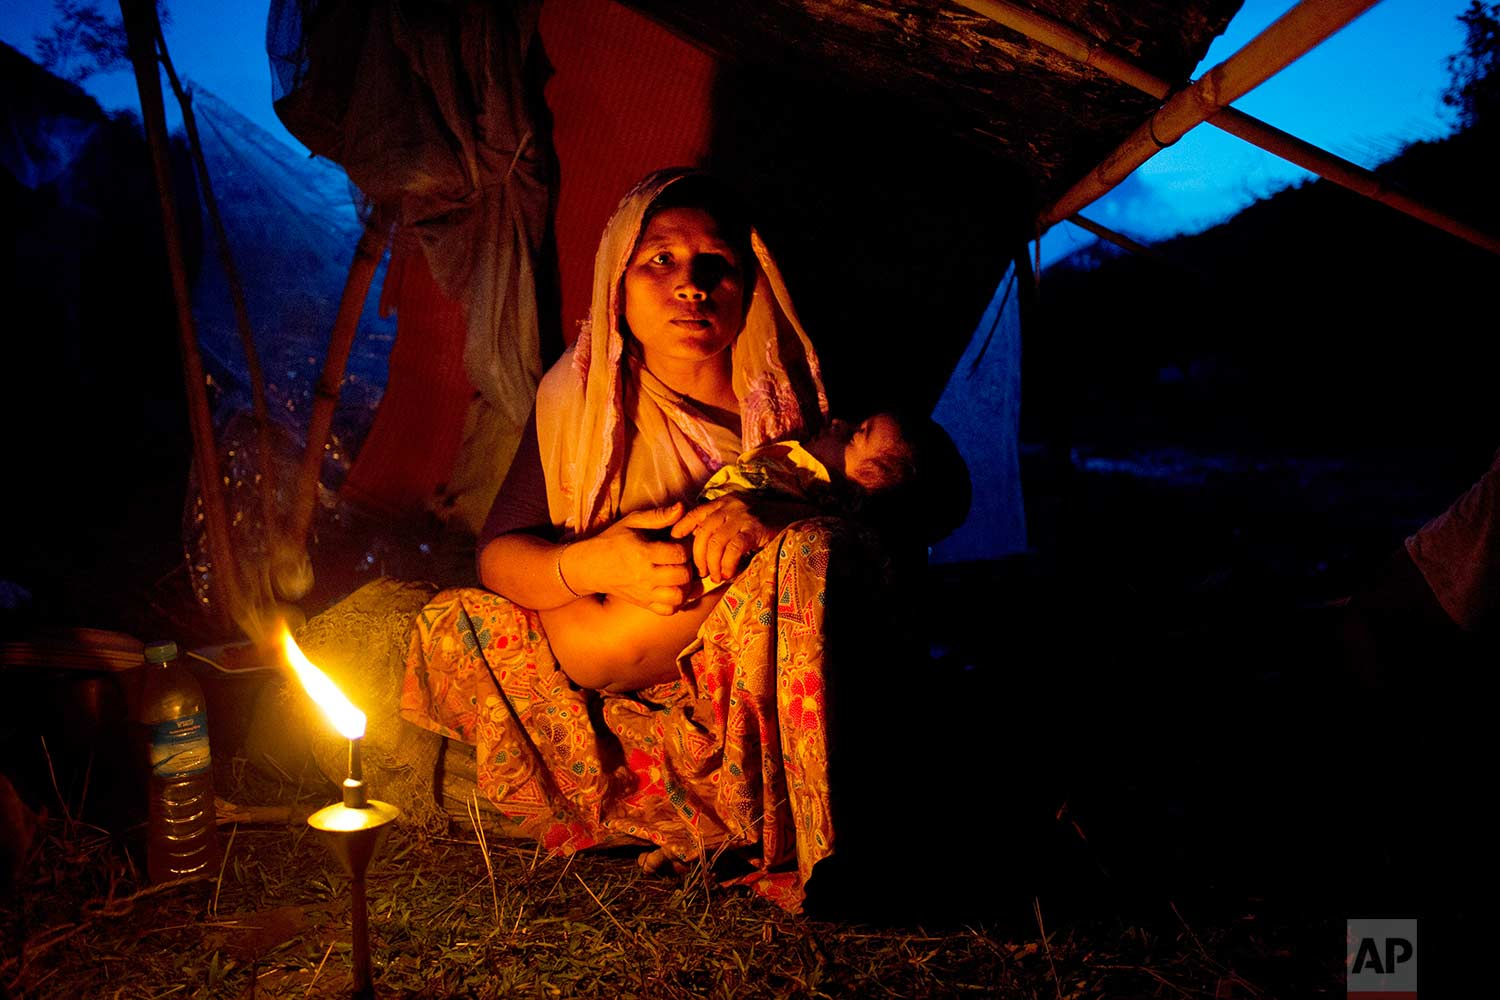 A Rohingya ethnic minority woman cradles her child at a temporary makeshift camp after crossing over from Myanmar into the Bangladesh side of the border, near Cox's Bazar's Gundum area, Saturday, Sept. 2, 2017. U.N. spokesman Stephane Dujarric told reporters at U.N. headquarters on Friday that while many of the 270,000 Rohingyas who have fled violence in Rakhine state in the past two weeks initially arrived in Bangladesh by land, more are now making the journey by boat. (AP Photo/Bernat Armangue)